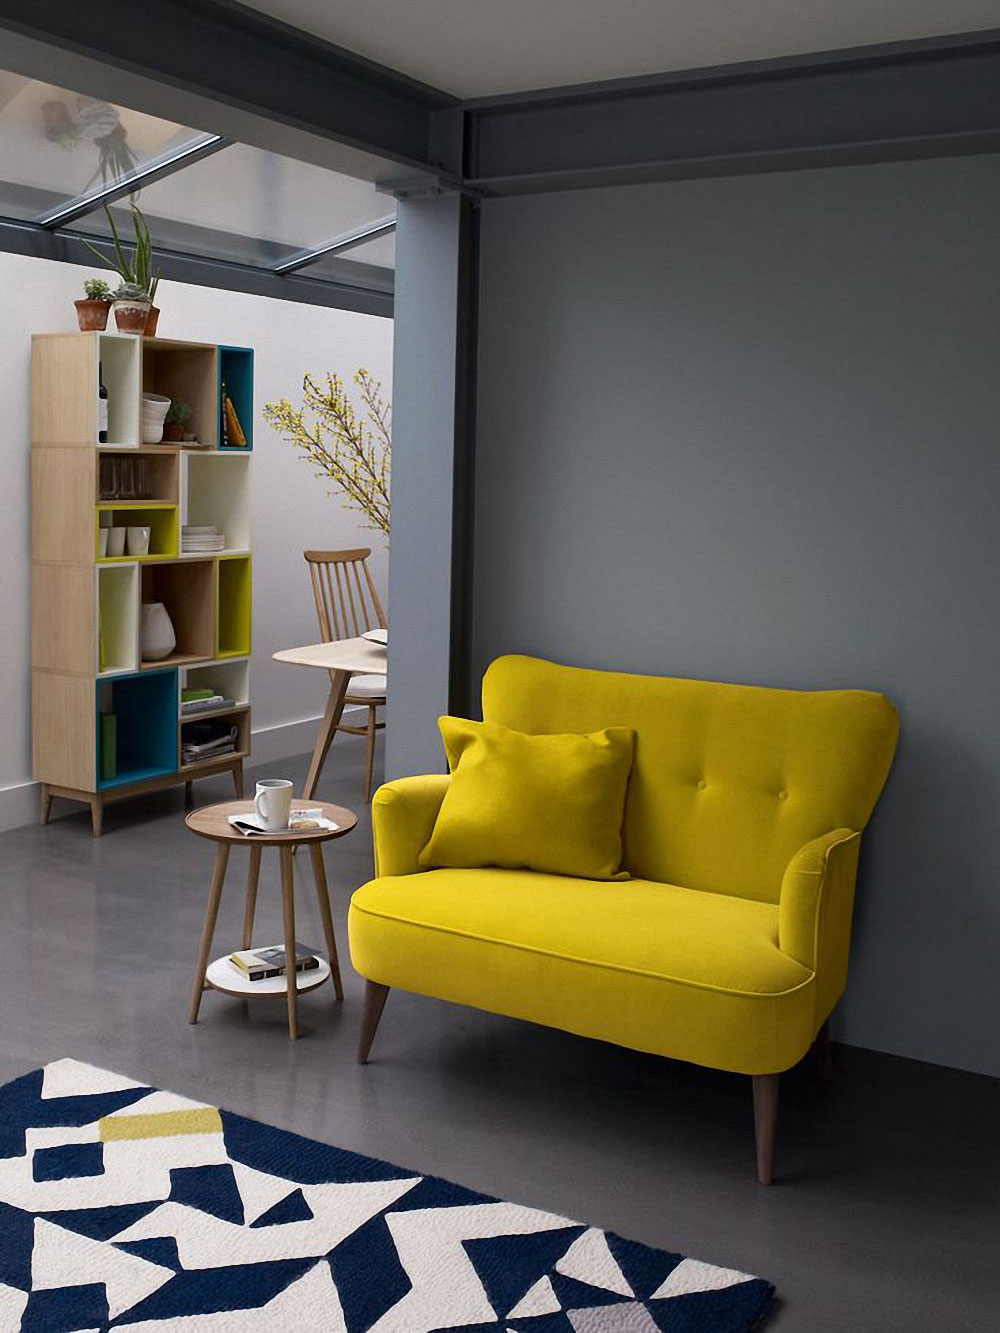 jestcafe.com--grey-rooms-6